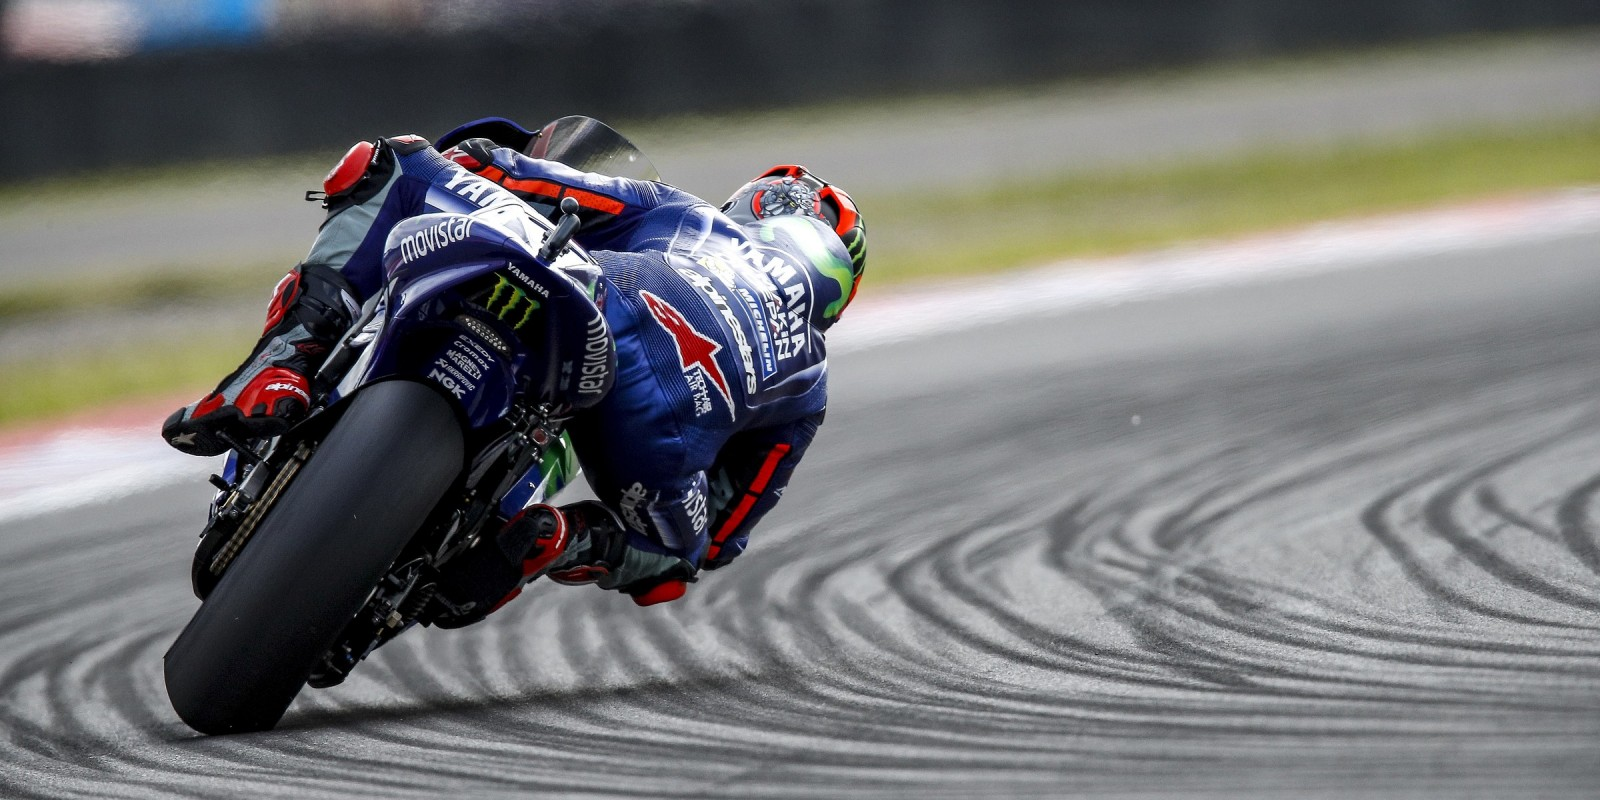 Maverick Viñales at the 2017 Grand Prix of Argentina